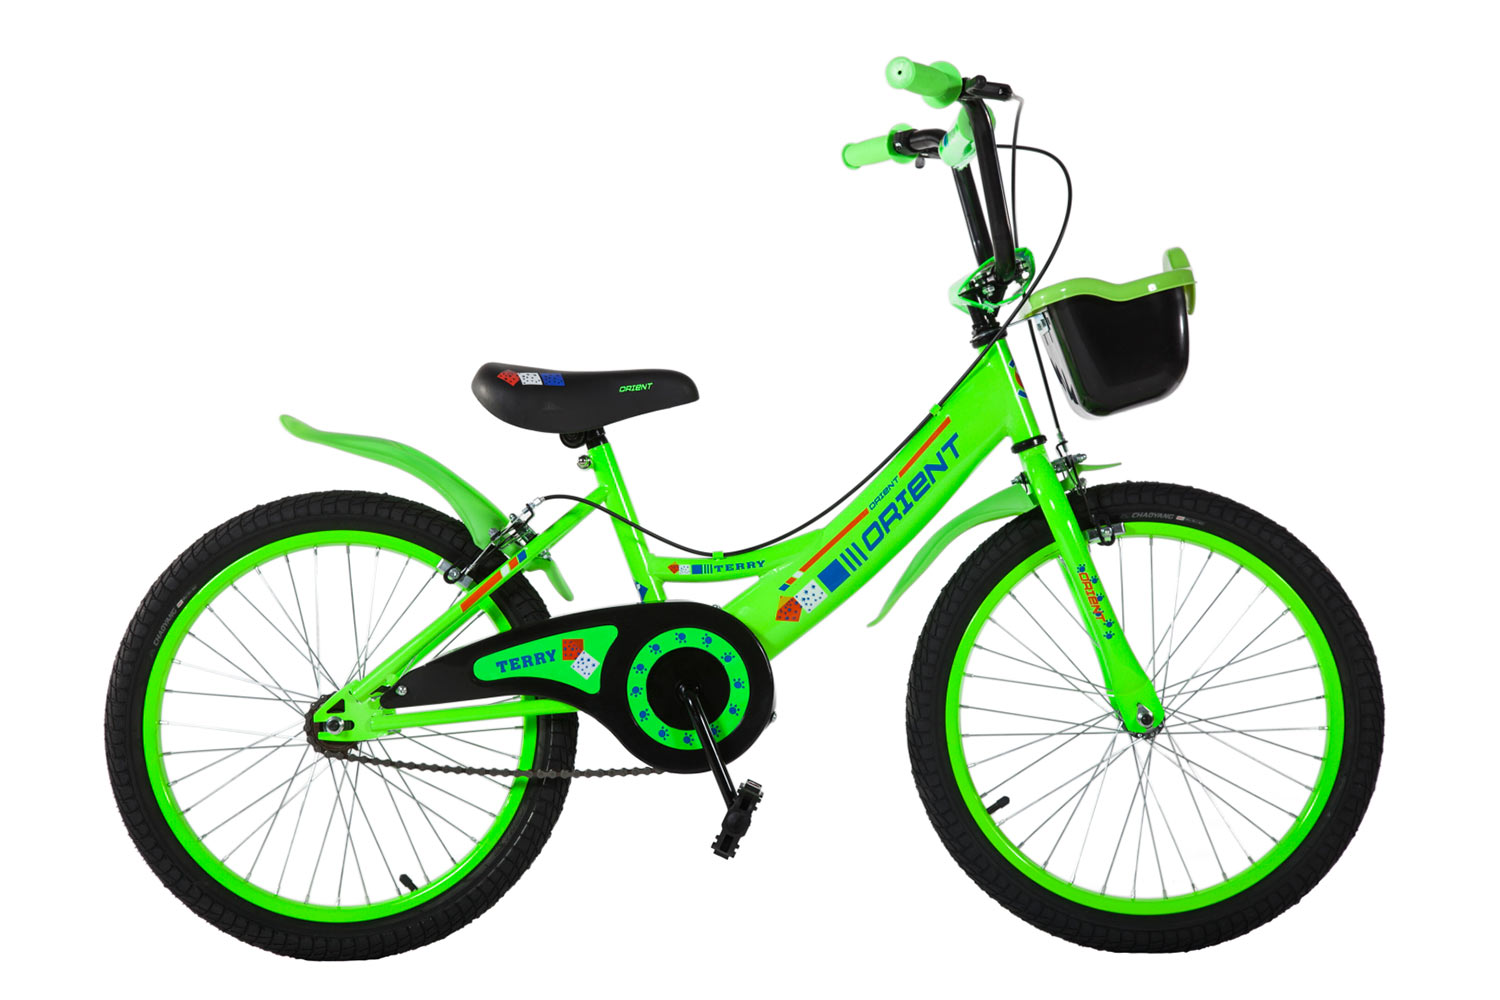 TERRY 20″ bike image